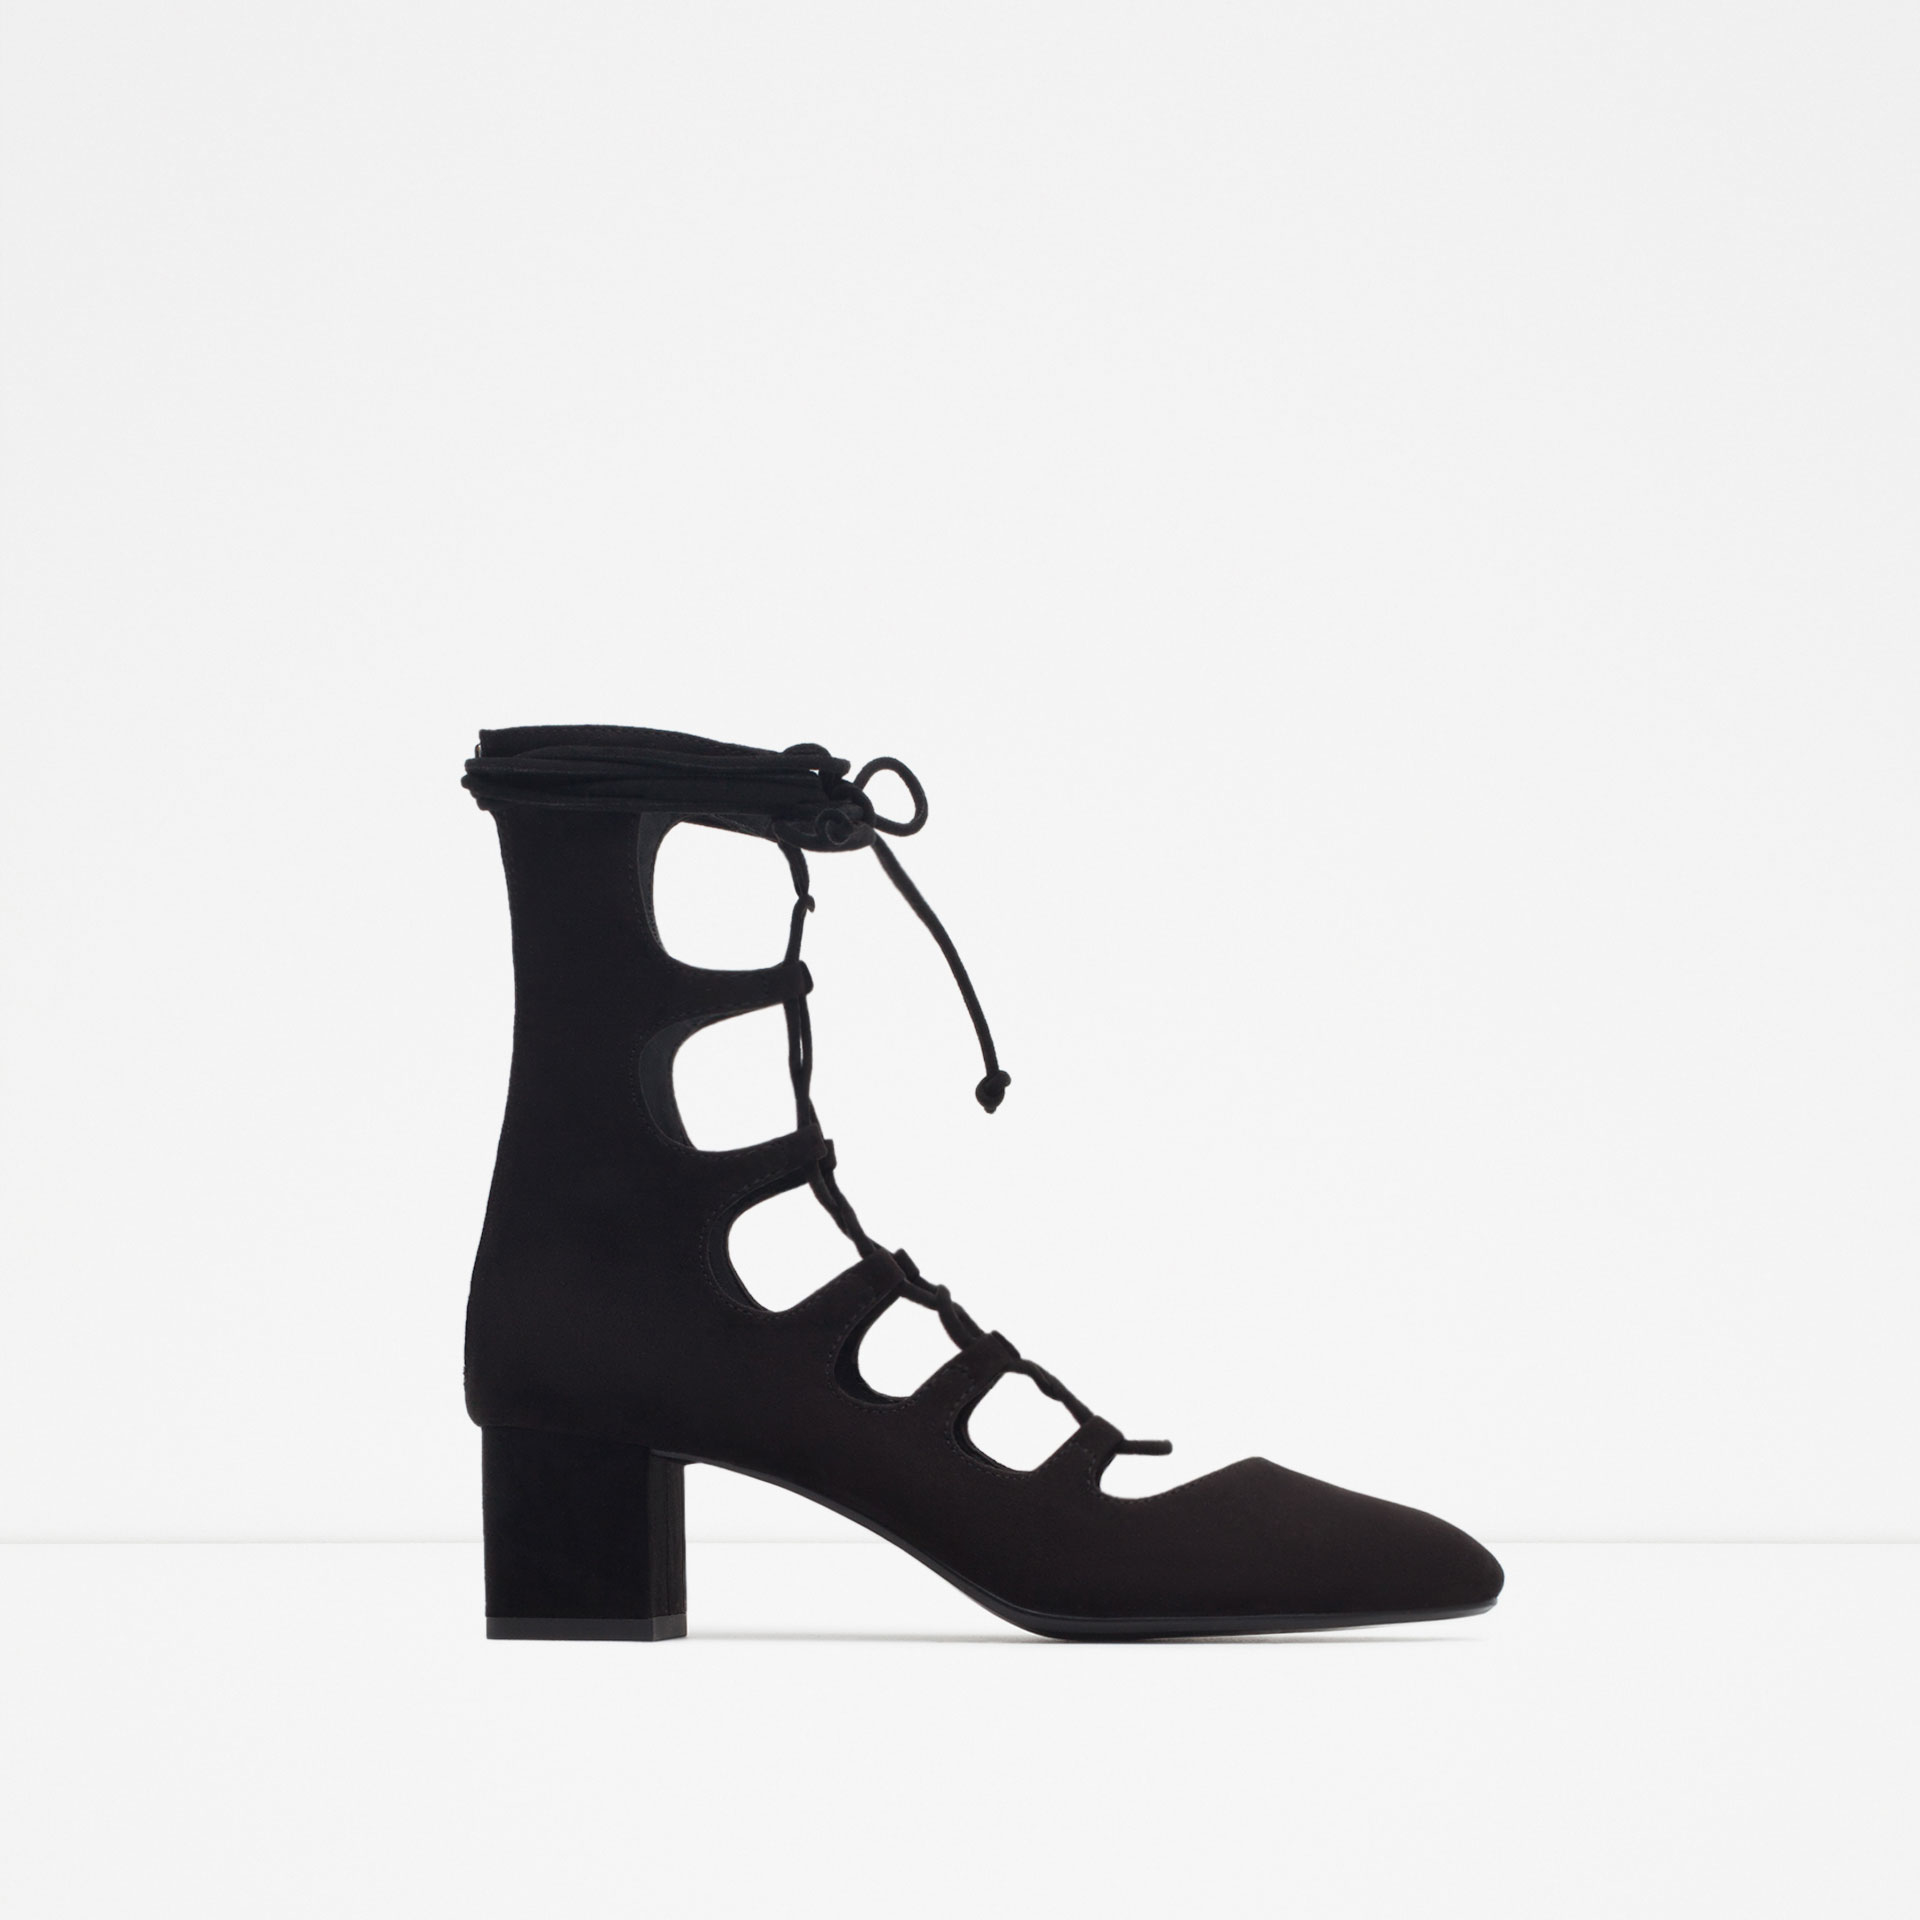 Zara Lace-up Heeled Shoes in Black | Lyst